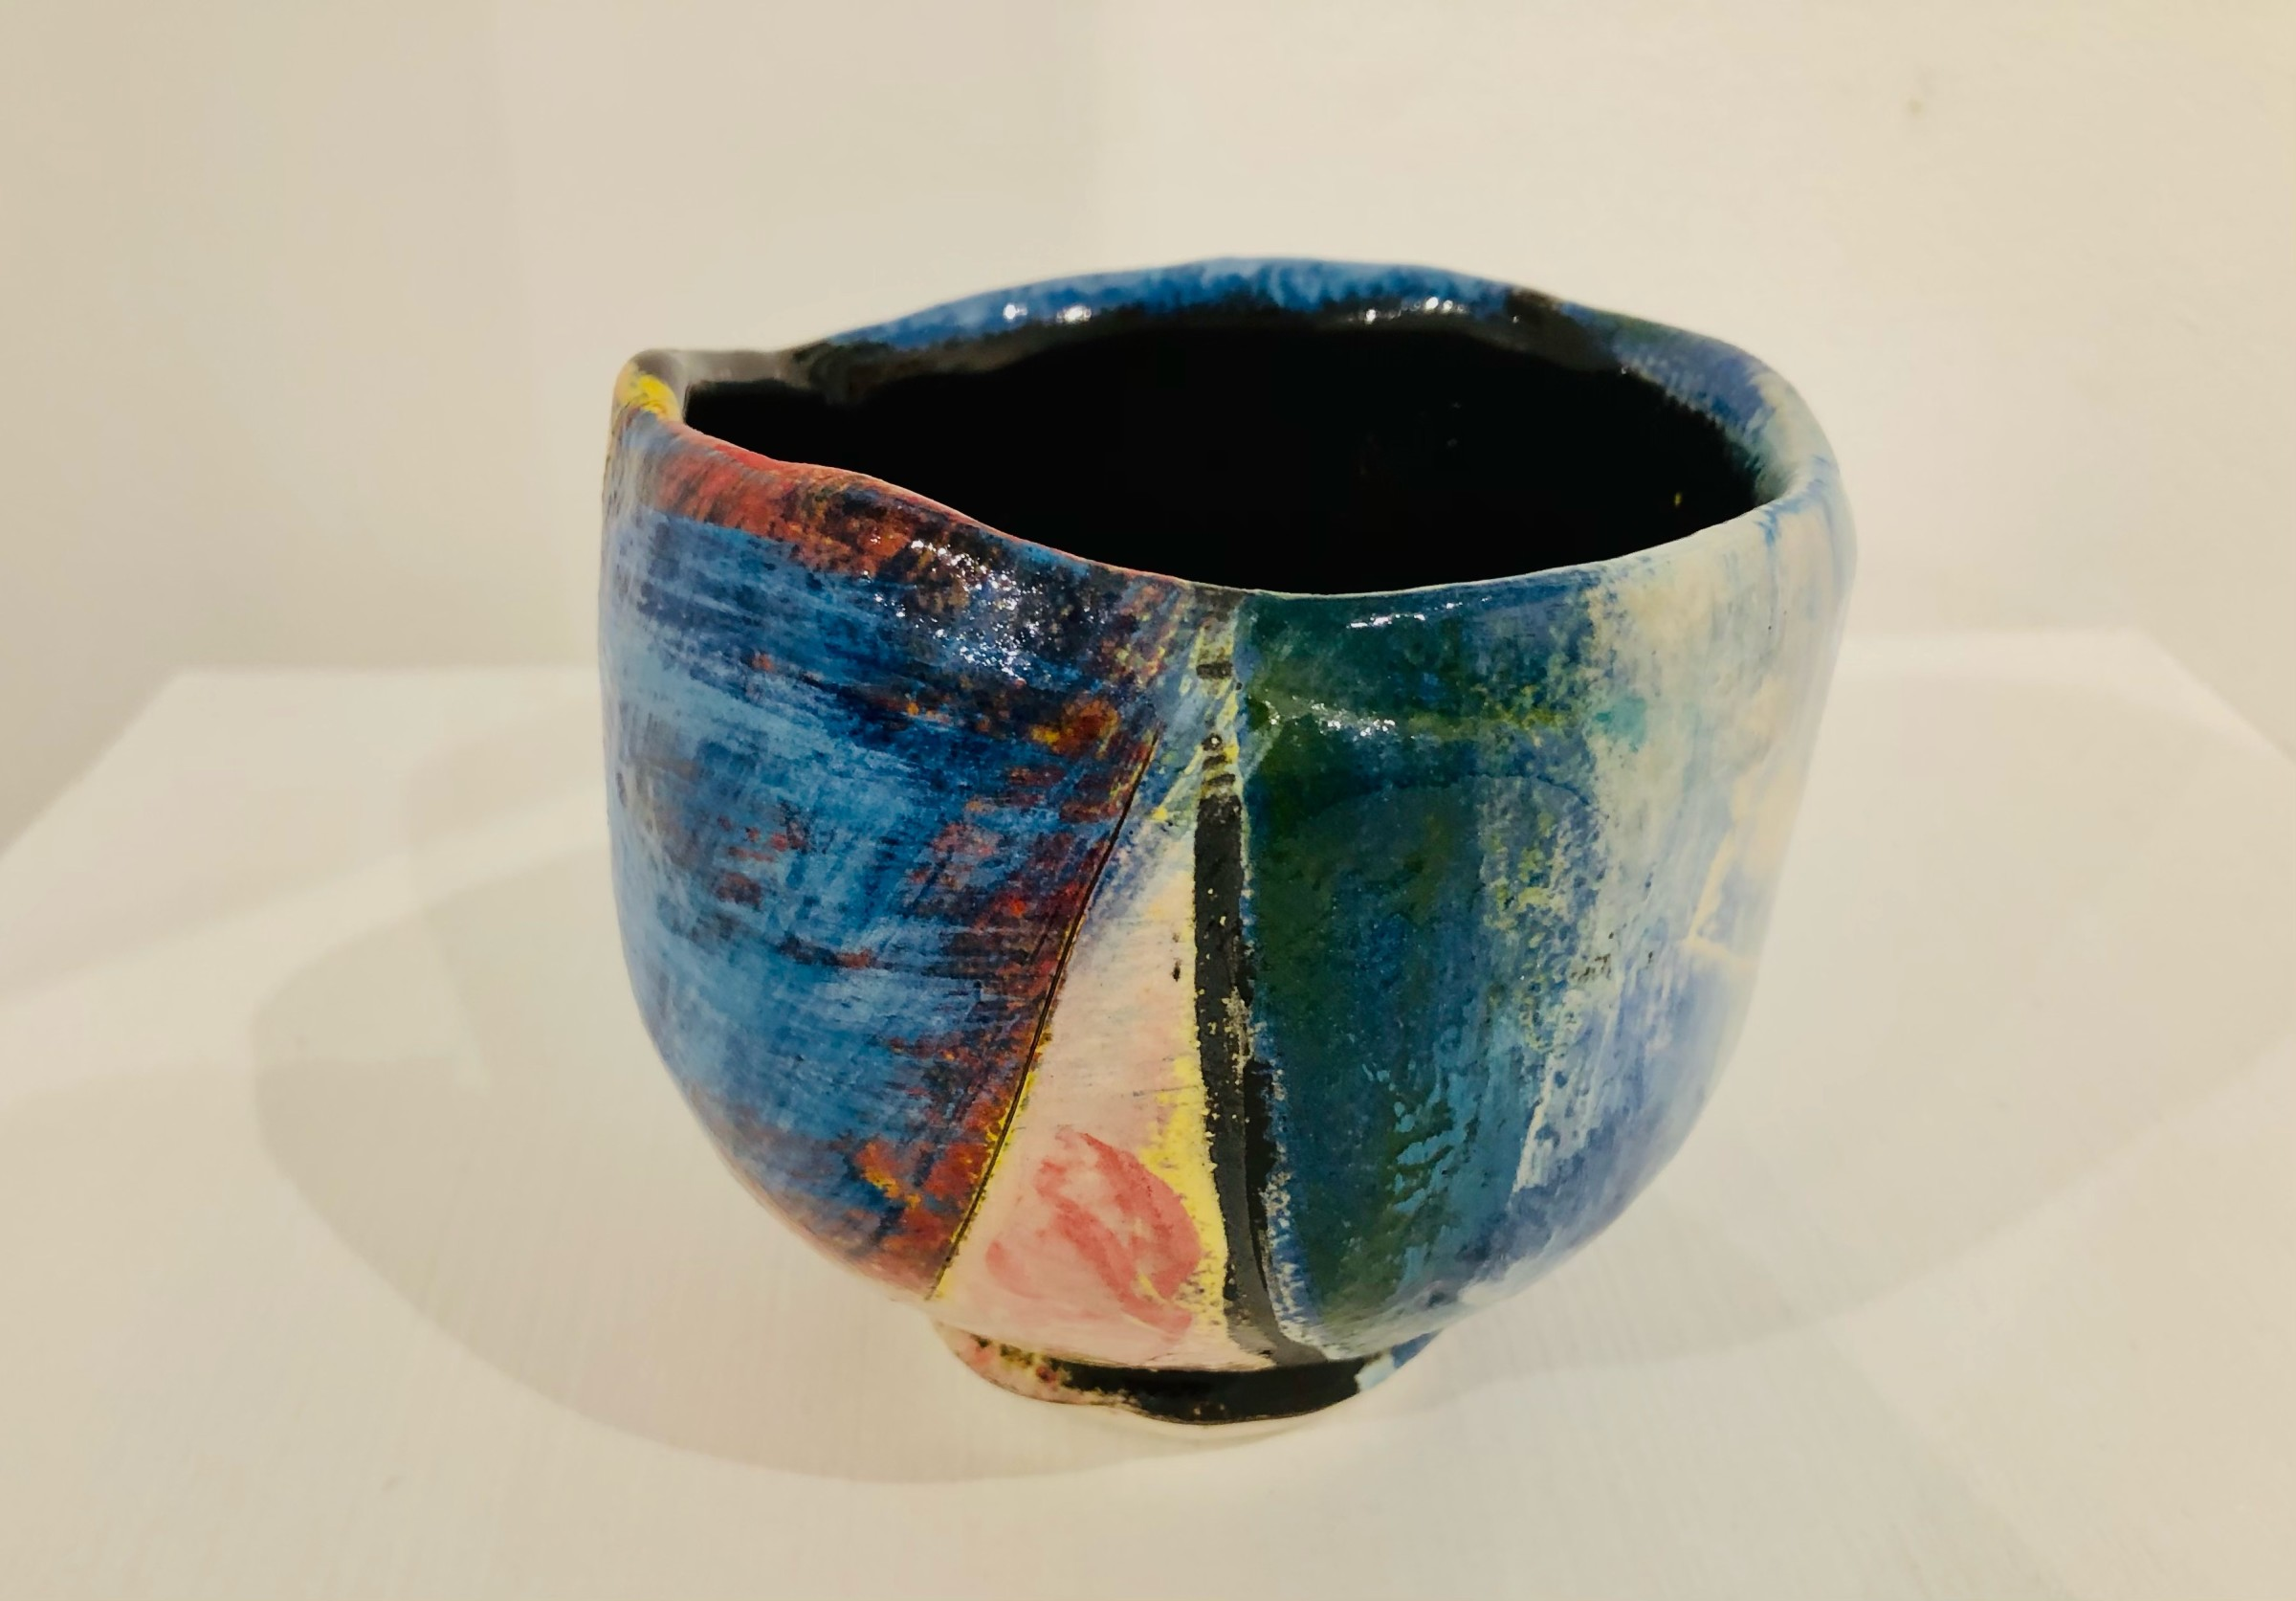 "<span class=""link fancybox-details-link""><a href=""/artists/100-john-pollex/works/7422-john-pollex-tea-bowl-hand-built-2020/"">View Detail Page</a></span><div class=""artist""><strong>John Pollex</strong></div> <div class=""title""><em>Tea bowl (hand built)</em>, 2020</div> <div class=""signed_and_dated"">impressed with the artist's seal mark 'JP'</div> <div class=""medium"">white earthenware decorated with coloured slips</div> <div class=""dimensions"">height. 10 cm x diameter. 10 cm</div><div class=""price"">£88.00</div><div class=""copyright_line"">Copyright The Artist</div>"